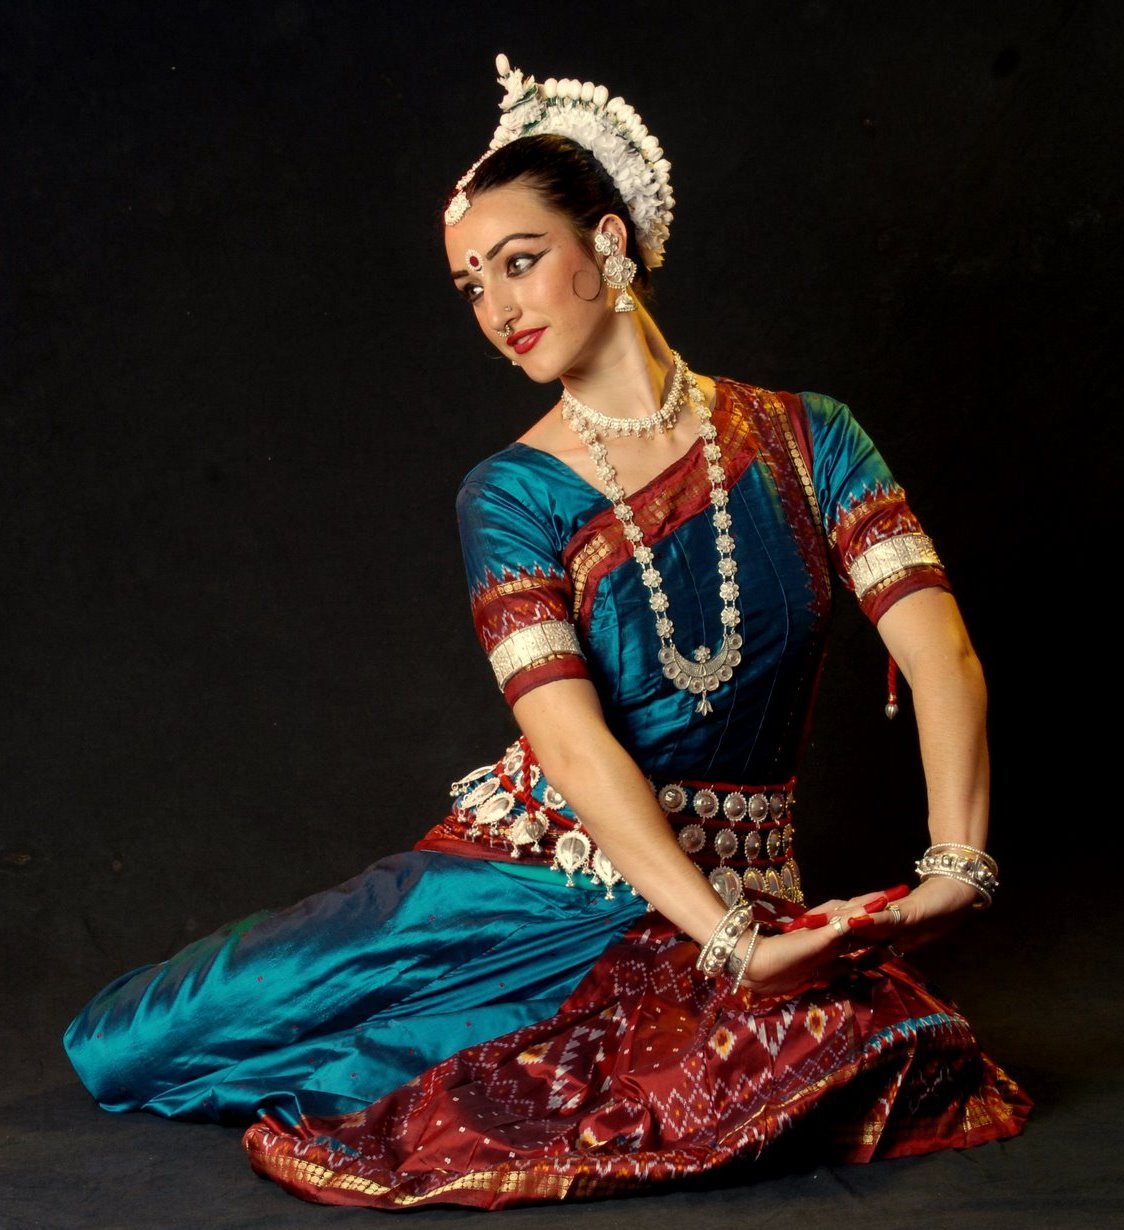 http://www.topnews.in/files/Indian-classical-dance.jpg